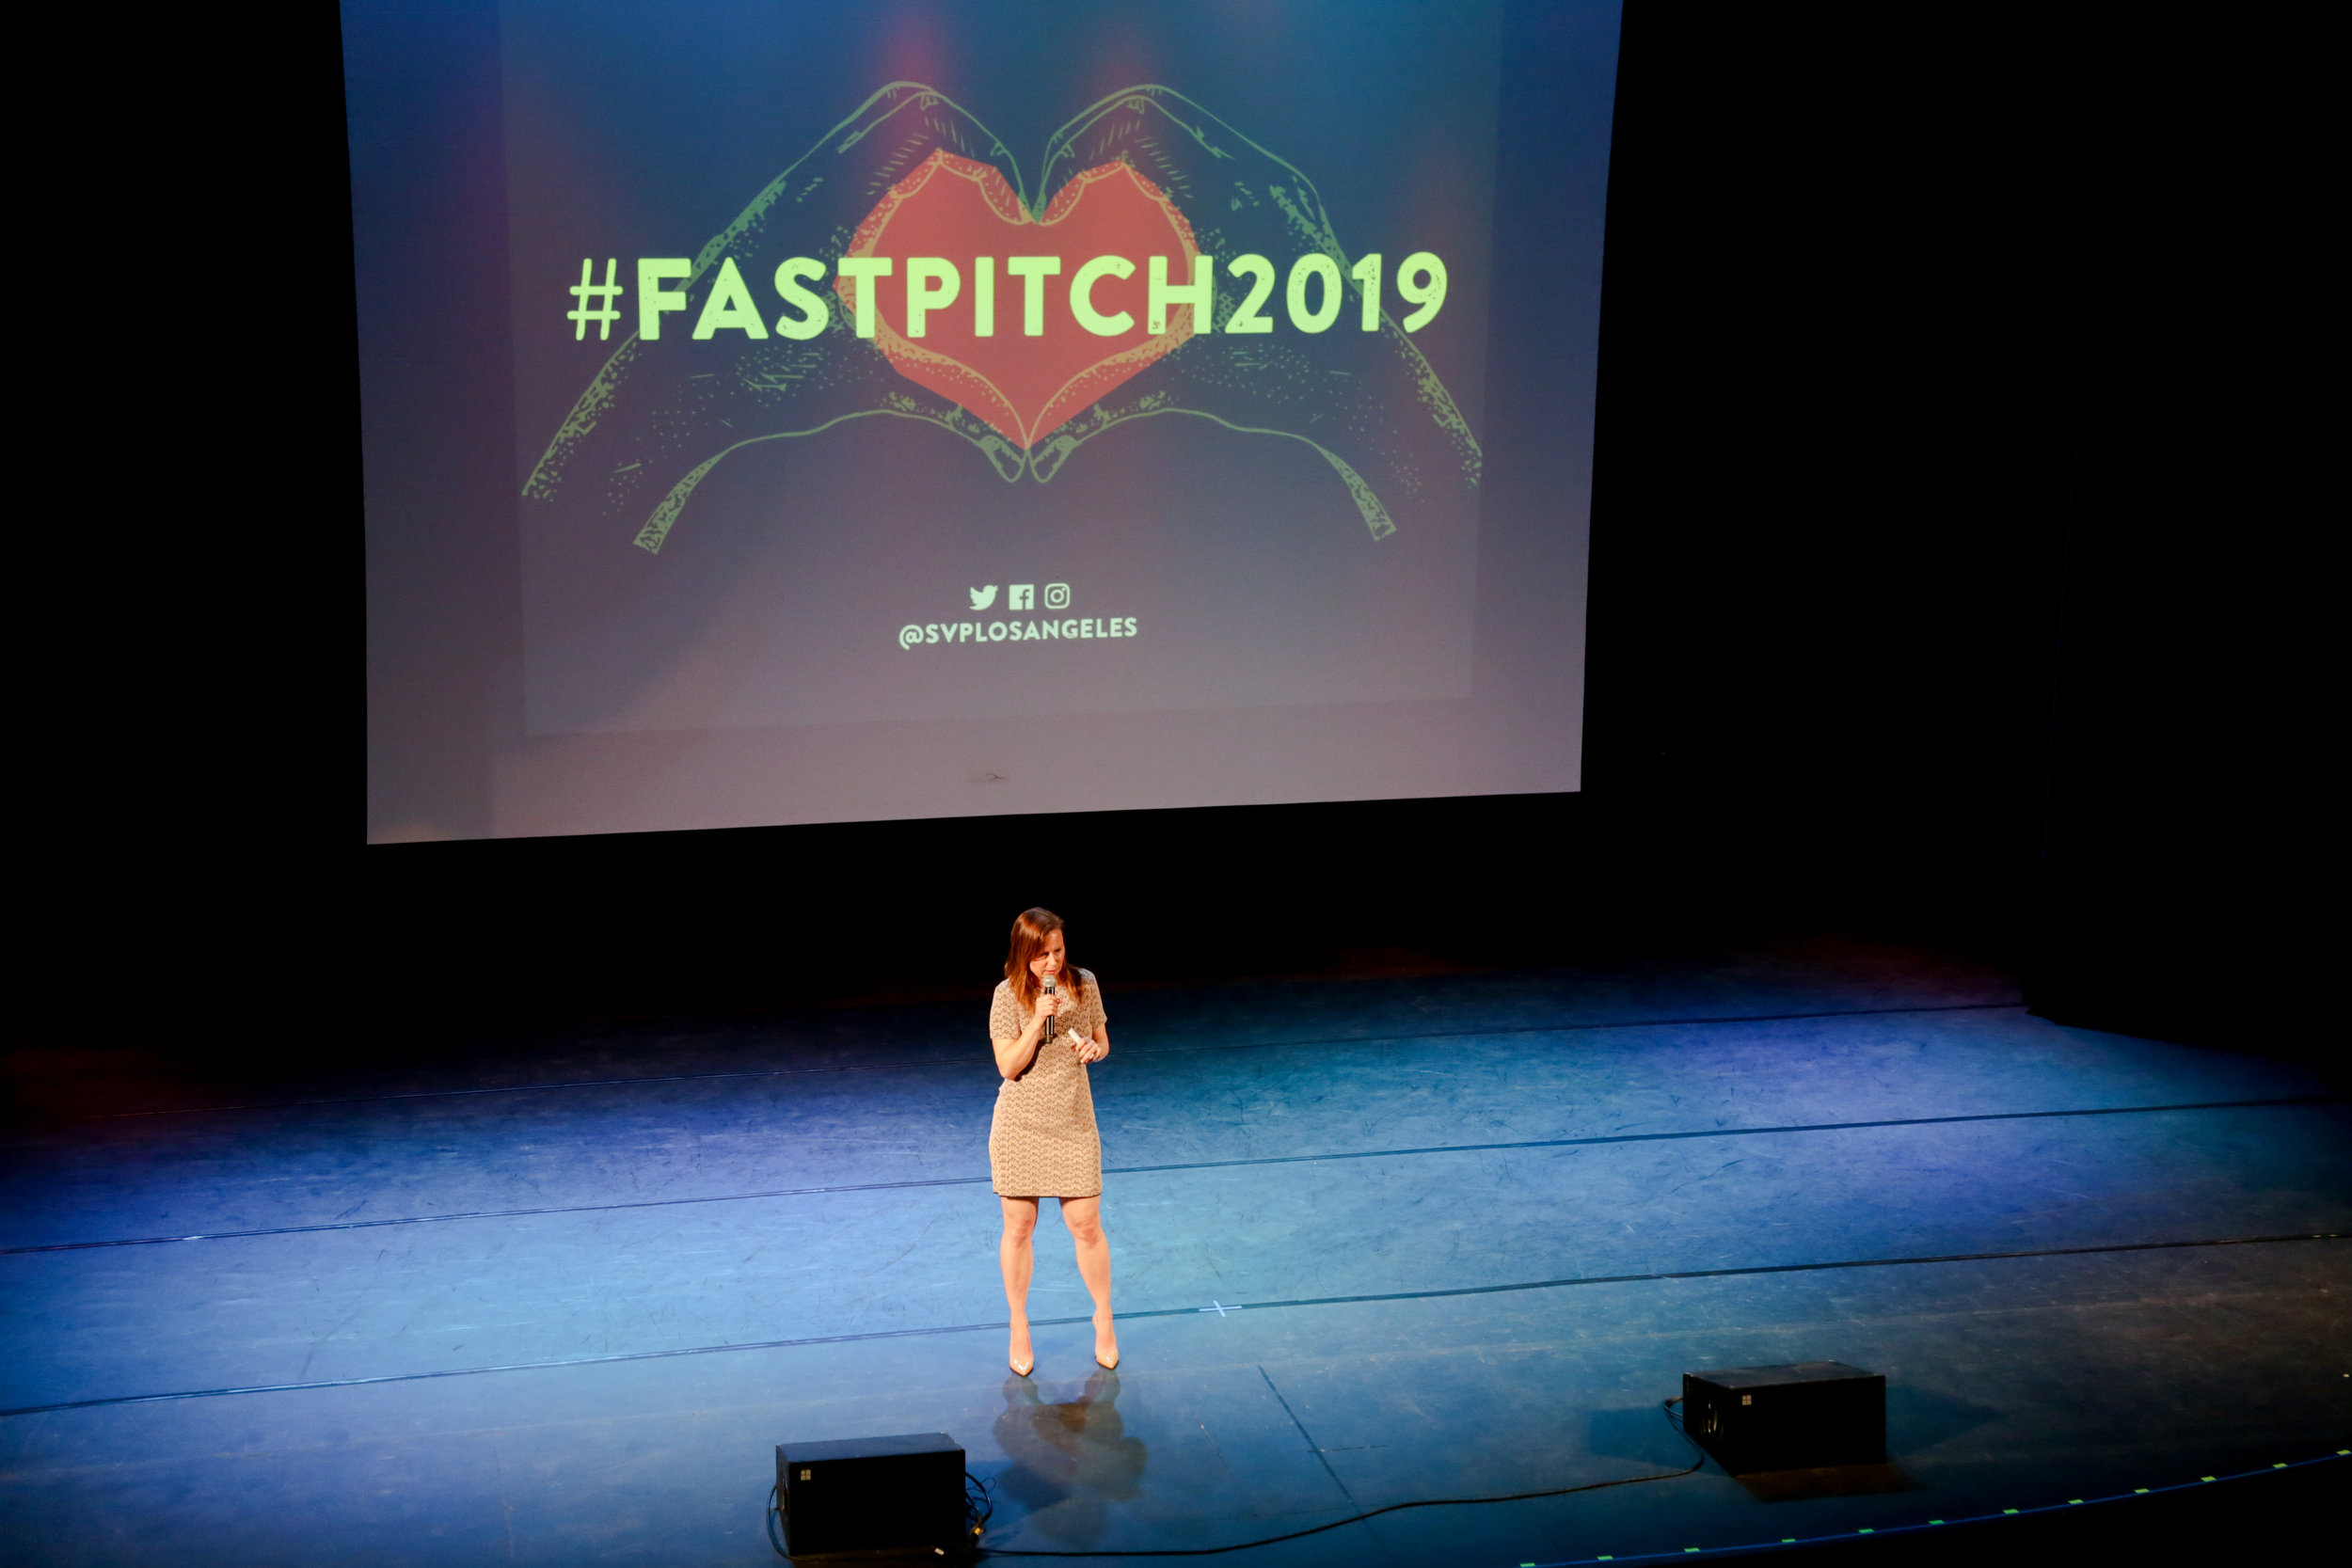 LFP_Spring2019_FastPitch_Speakers_0123_edit.jpg